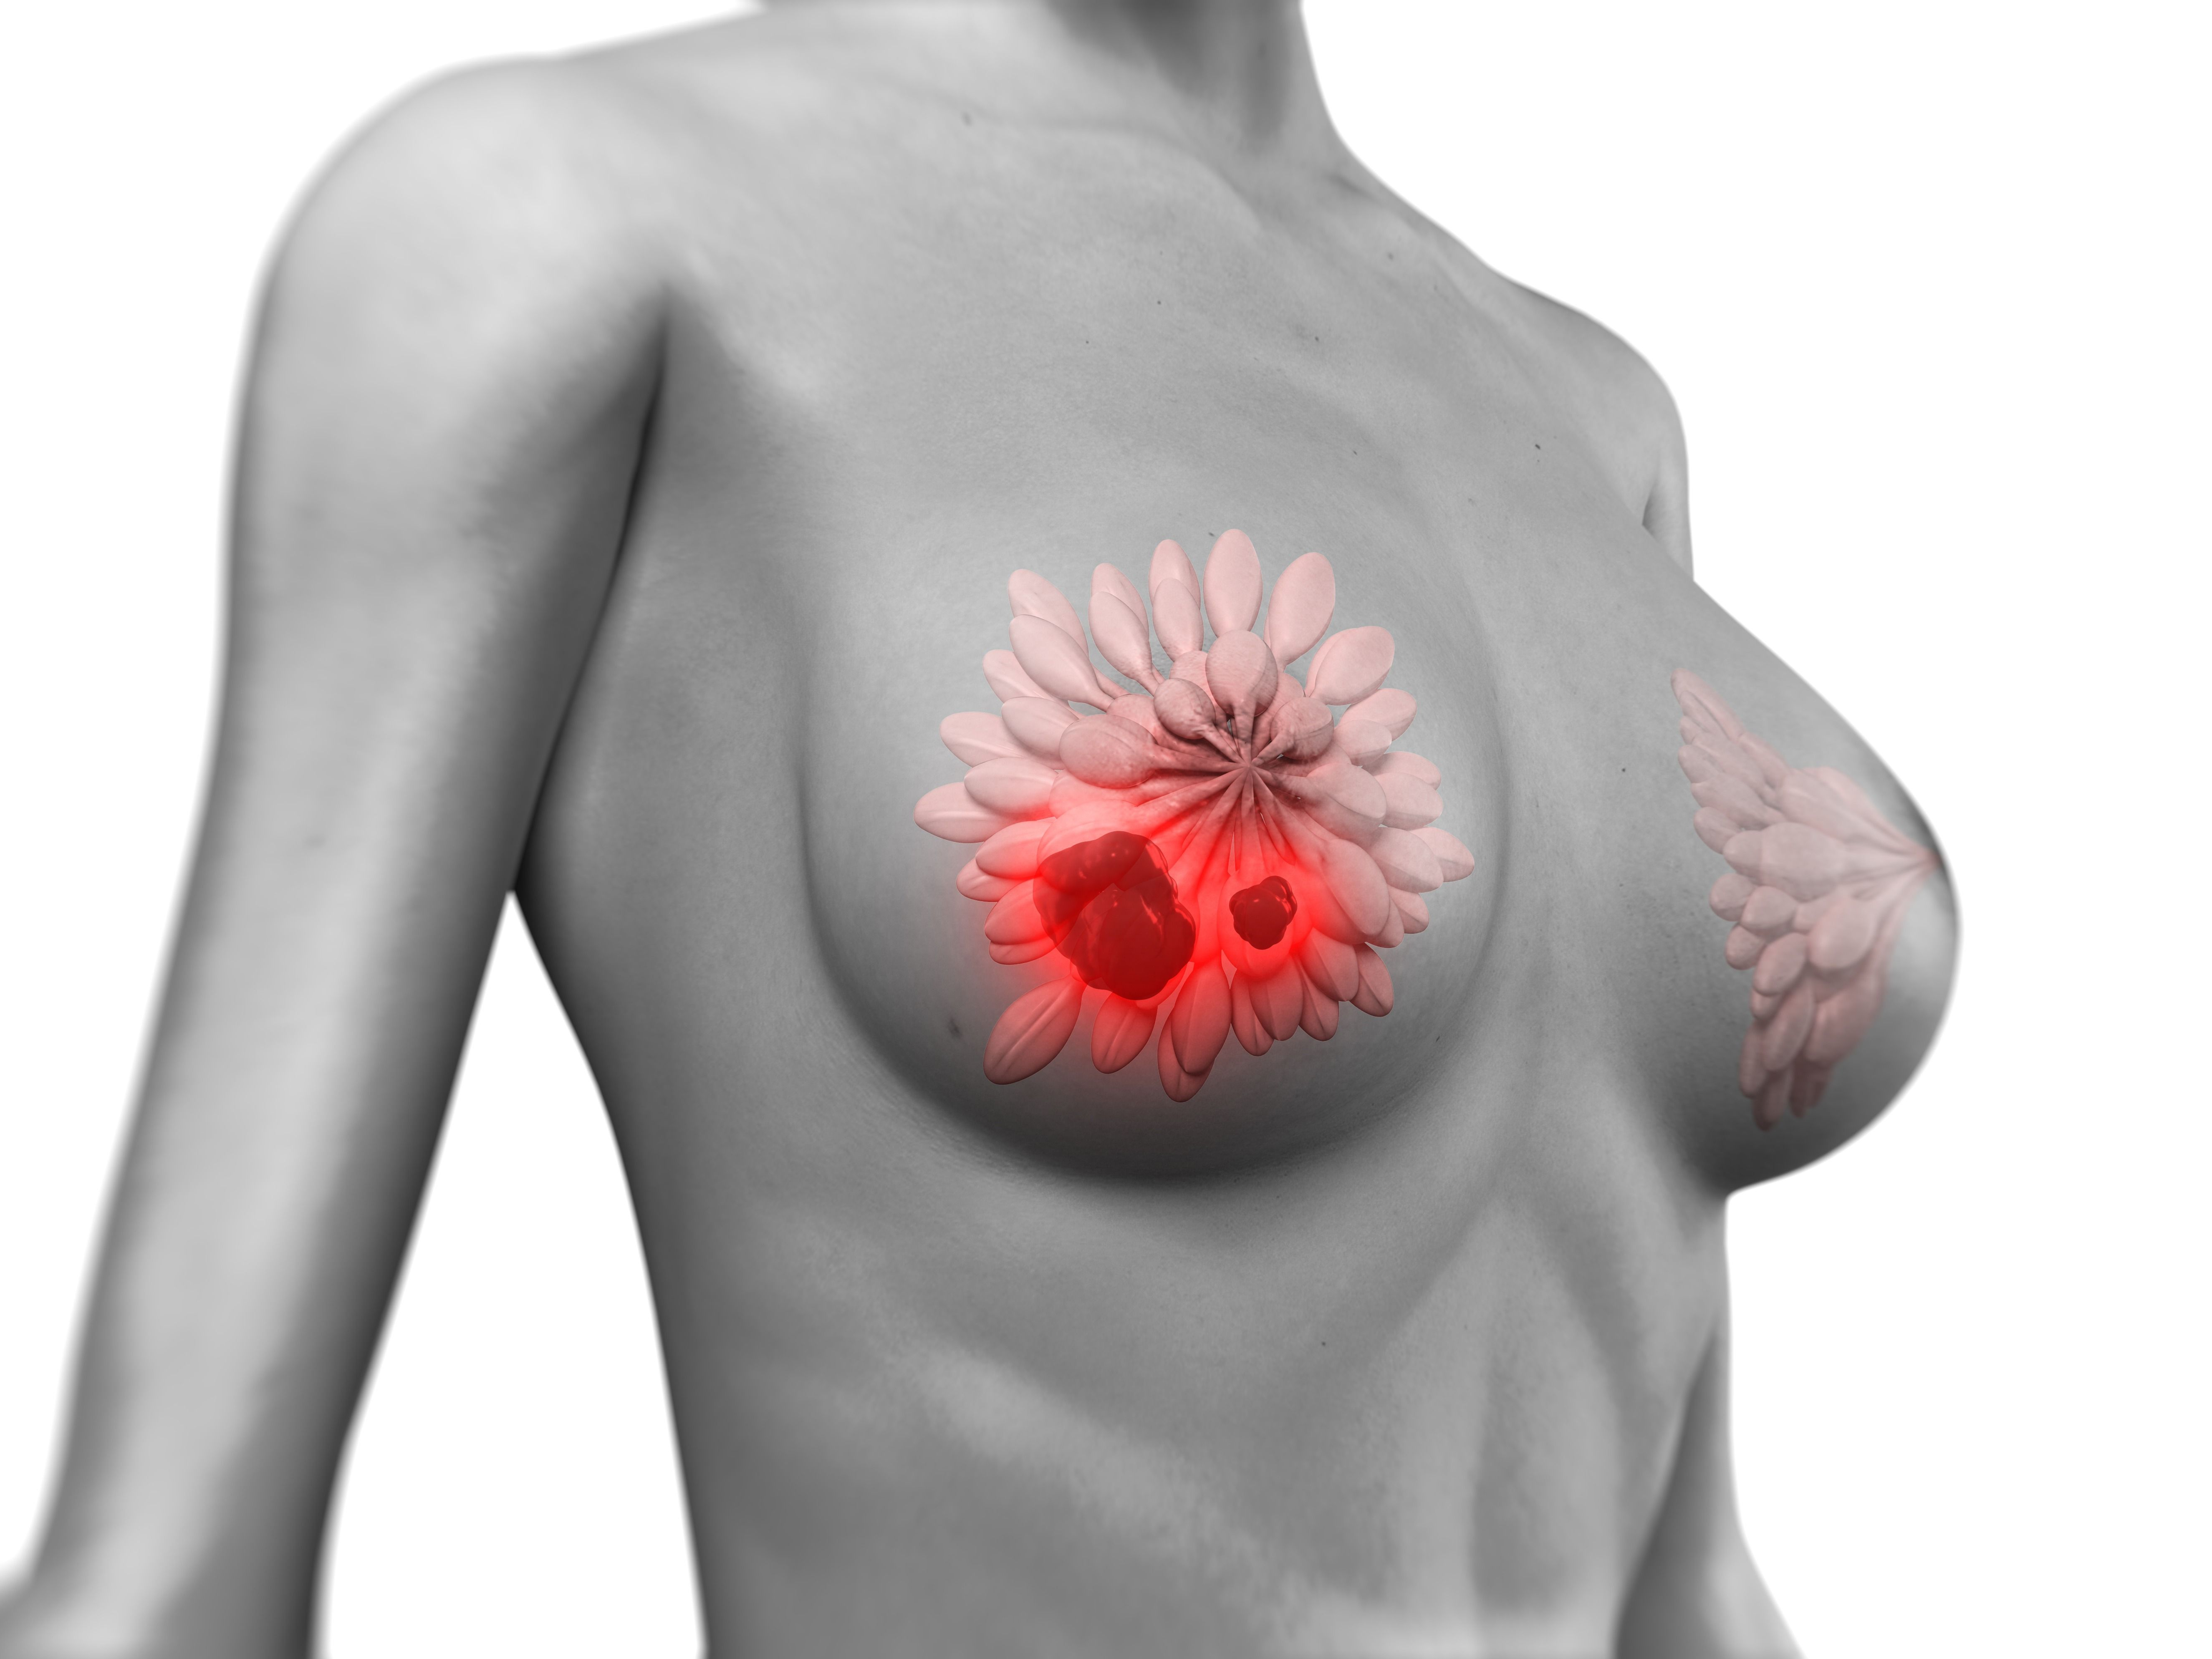 Radial Scars and Breast Cancer Risk